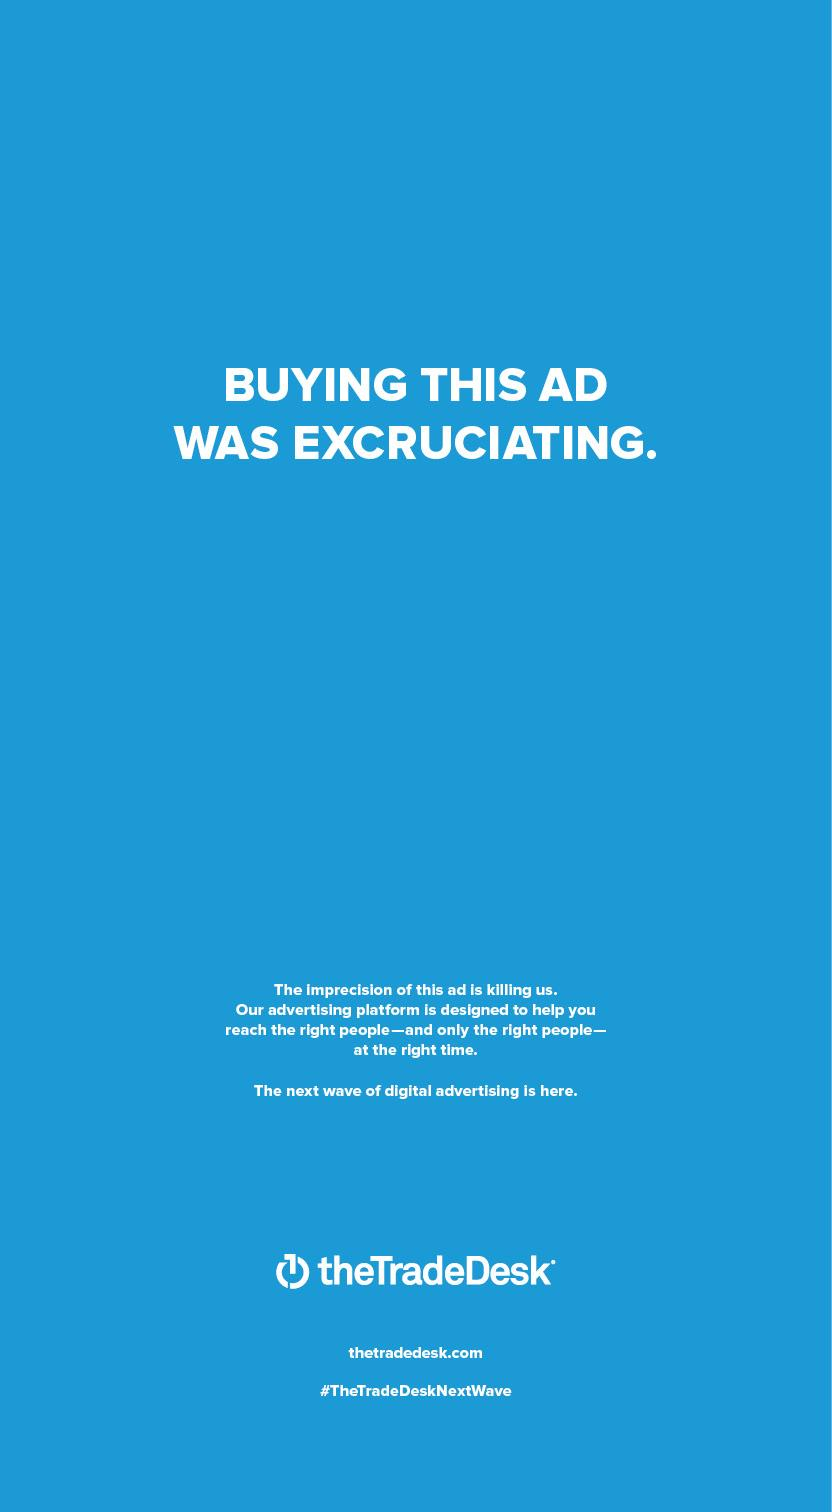 The Trade Desk: Buying This Ad Was Excruciating